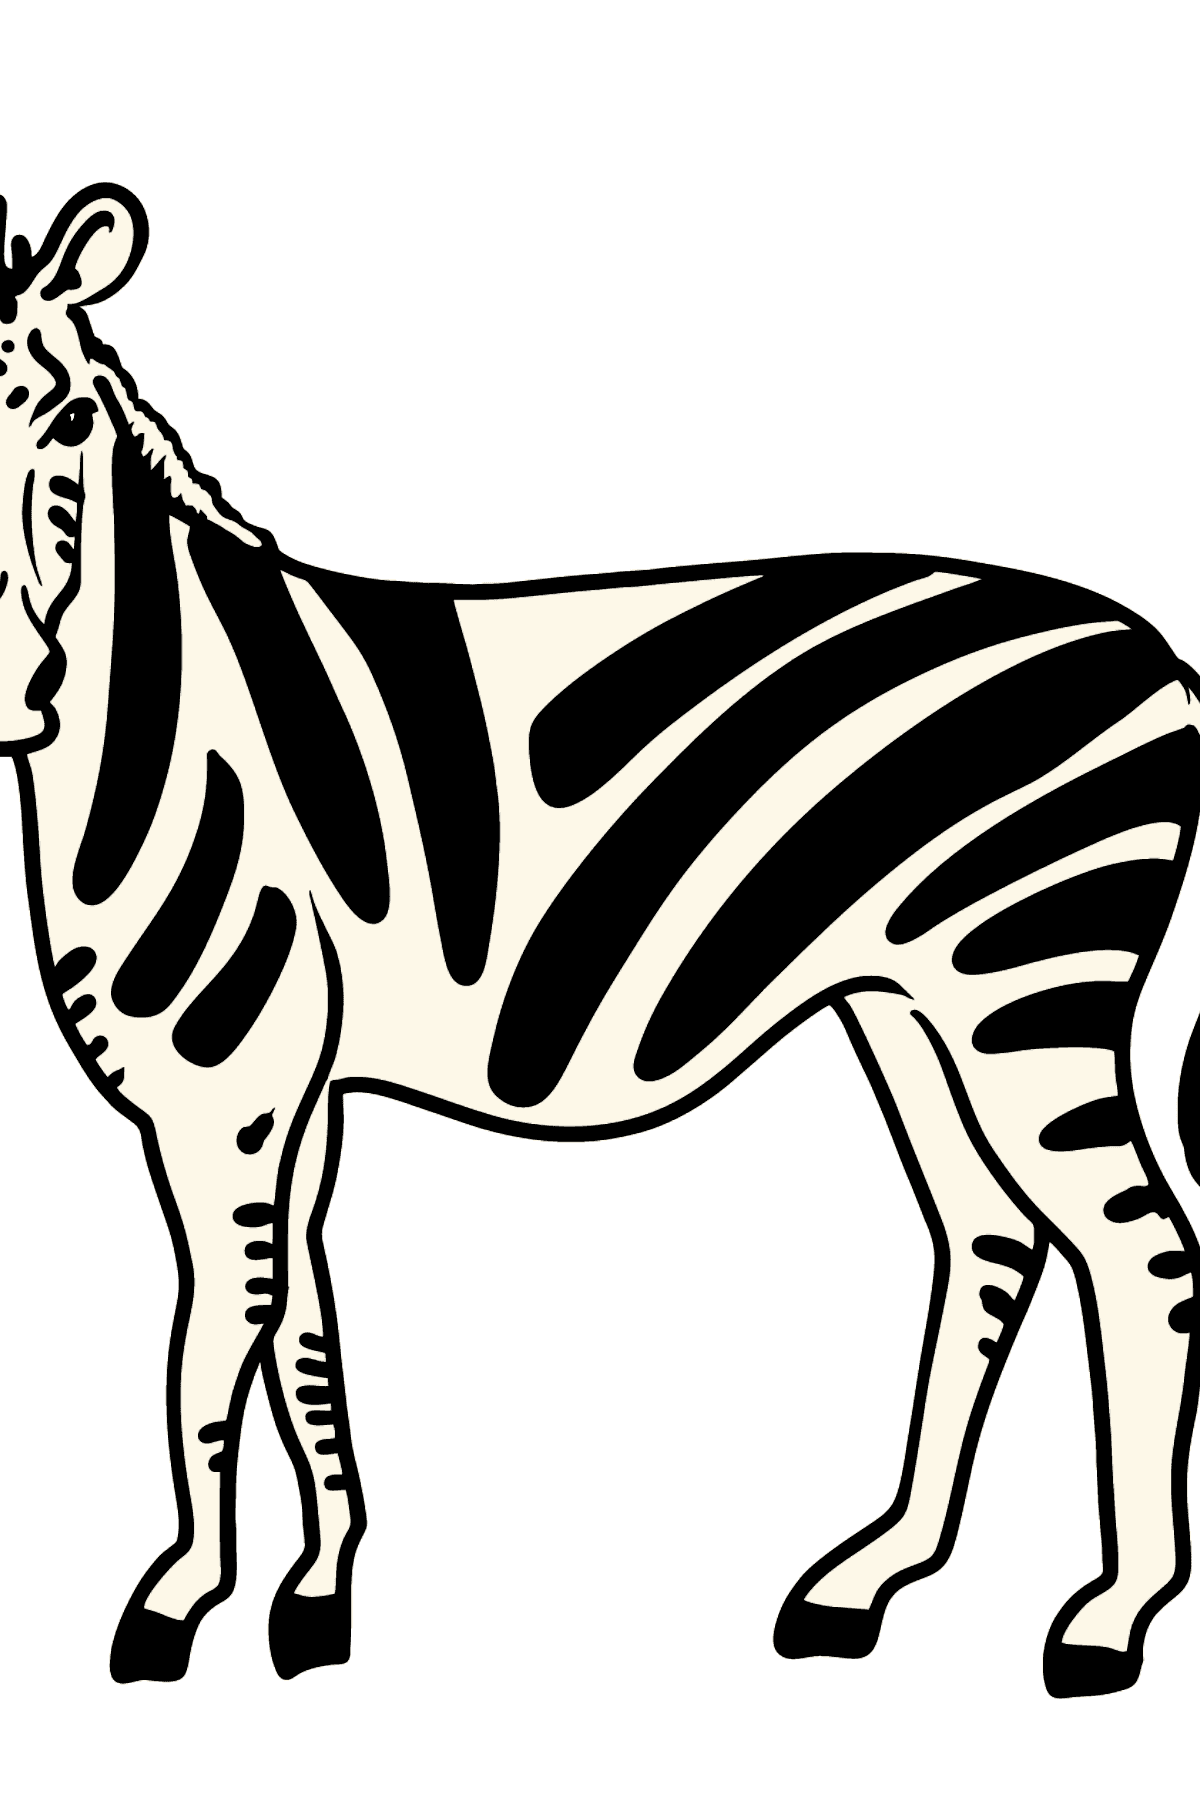 Zebra coloring page - Coloring Pages for Kids